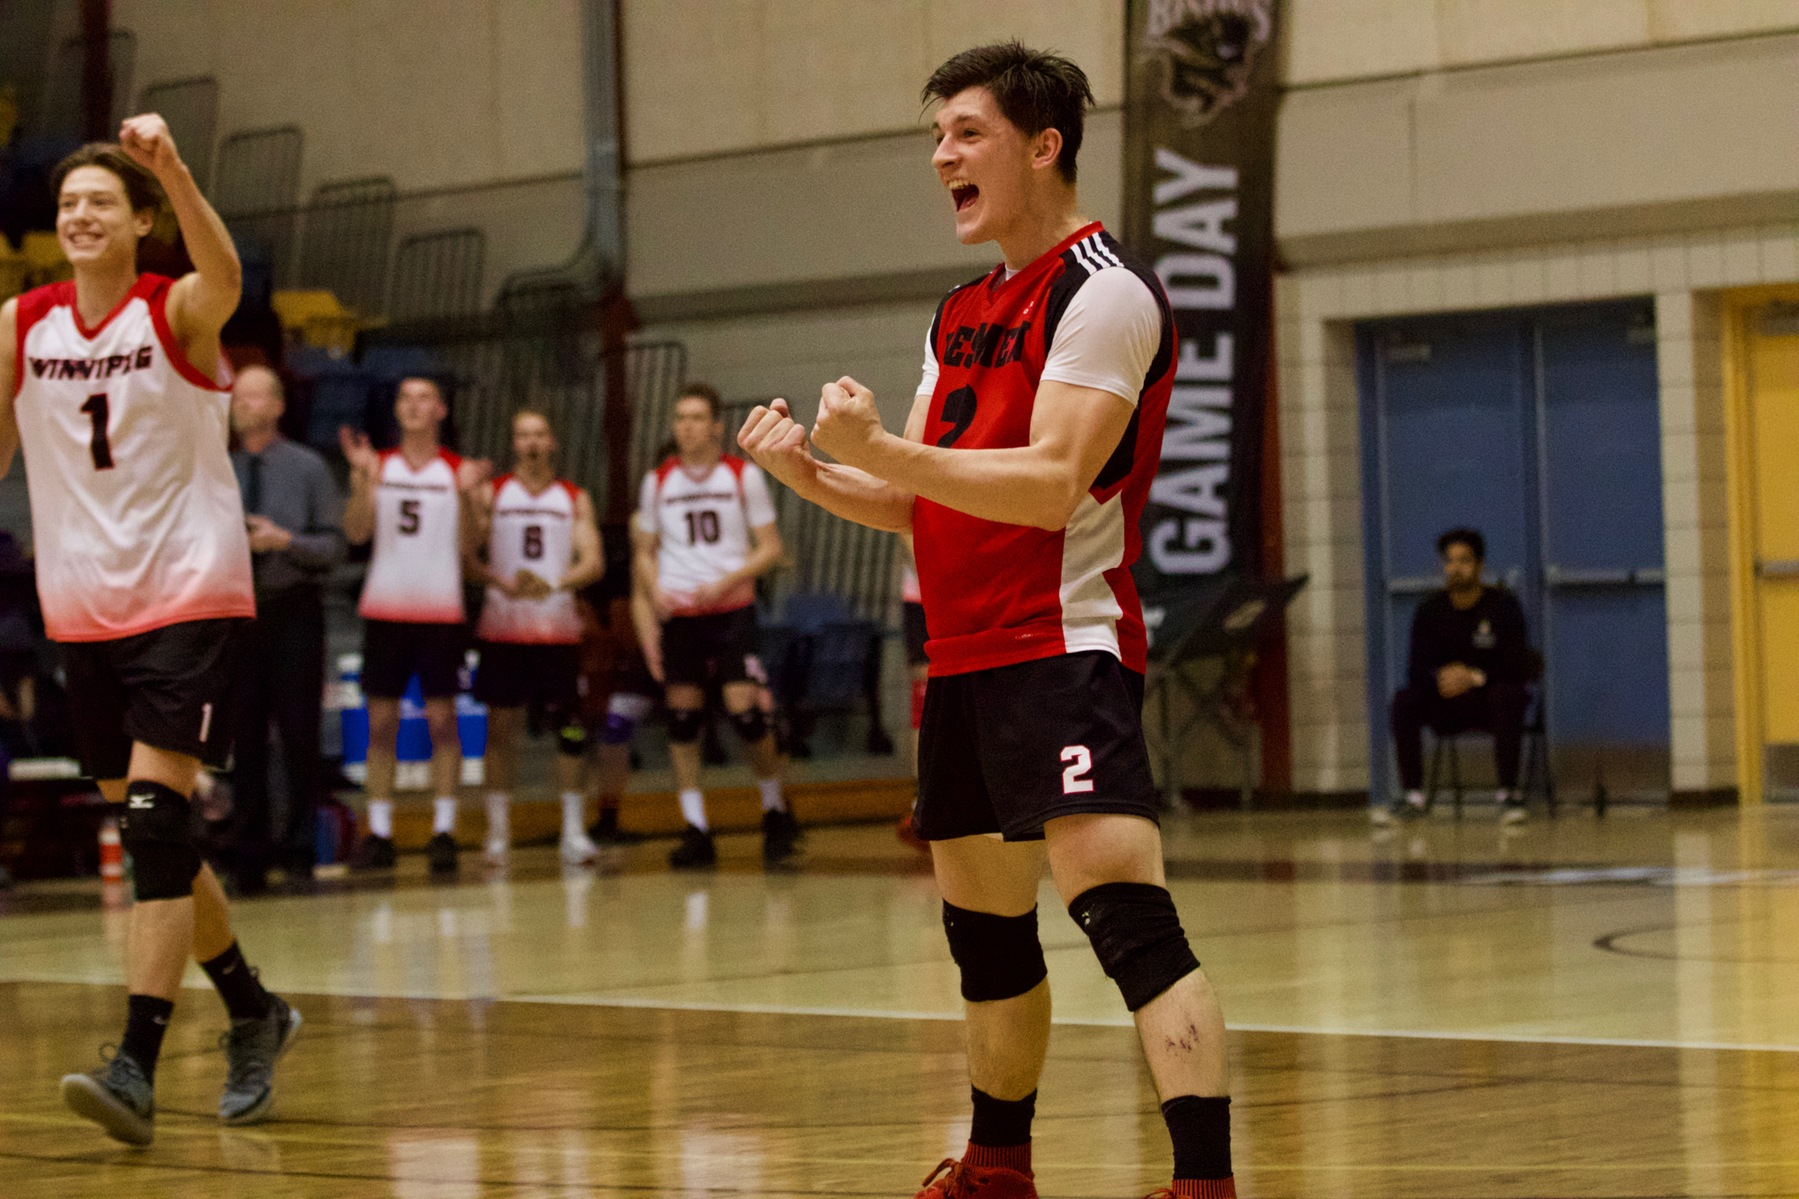 Wesmen libero Darian Picklyk, right, and teammate Austin Anderson celebrate a big block for a point during the first set of the Wesmen men's volleyball team's win over the Manitoba Bisons Friday, February 1, 2019. (David Larkins/Wesmen Athletics)